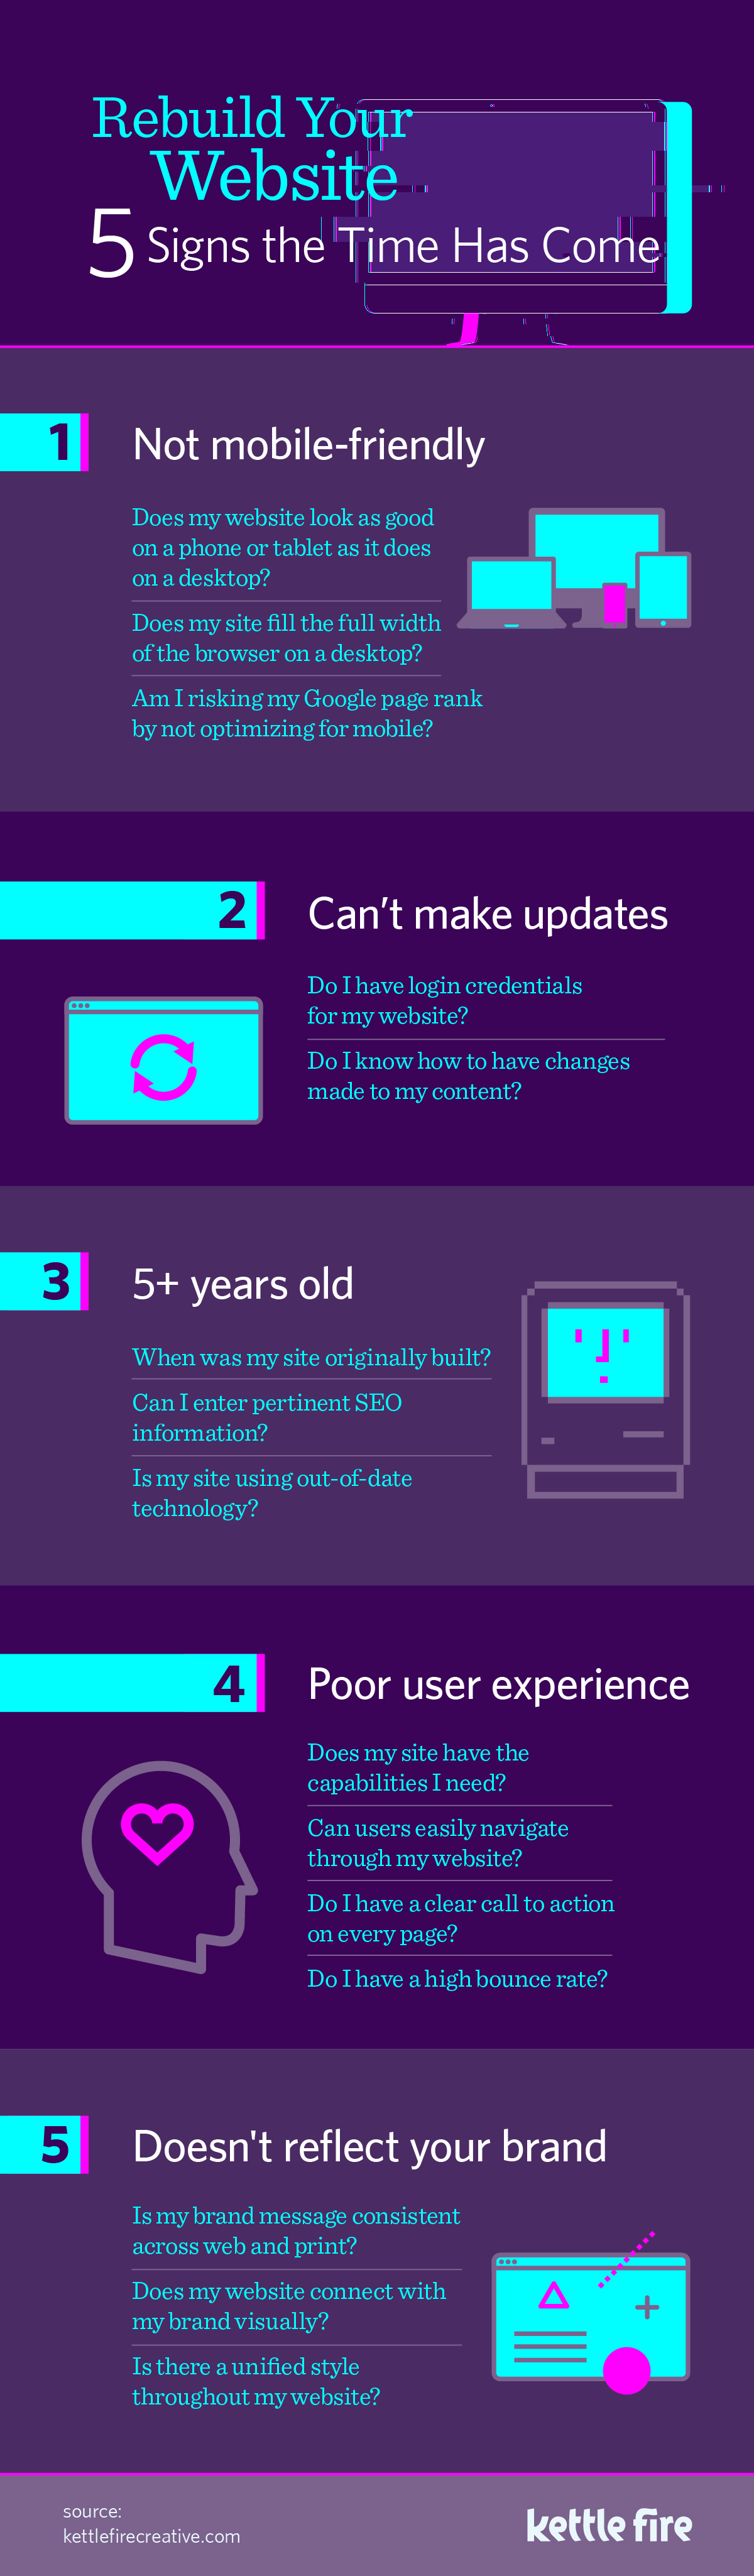 rebuild your website Kettle Fire Creative blog web developer rebuild your website Rebuild Your Website: 5 Signs the Time Has Come [infographic] redesign your website 5 signs the time has come infographic